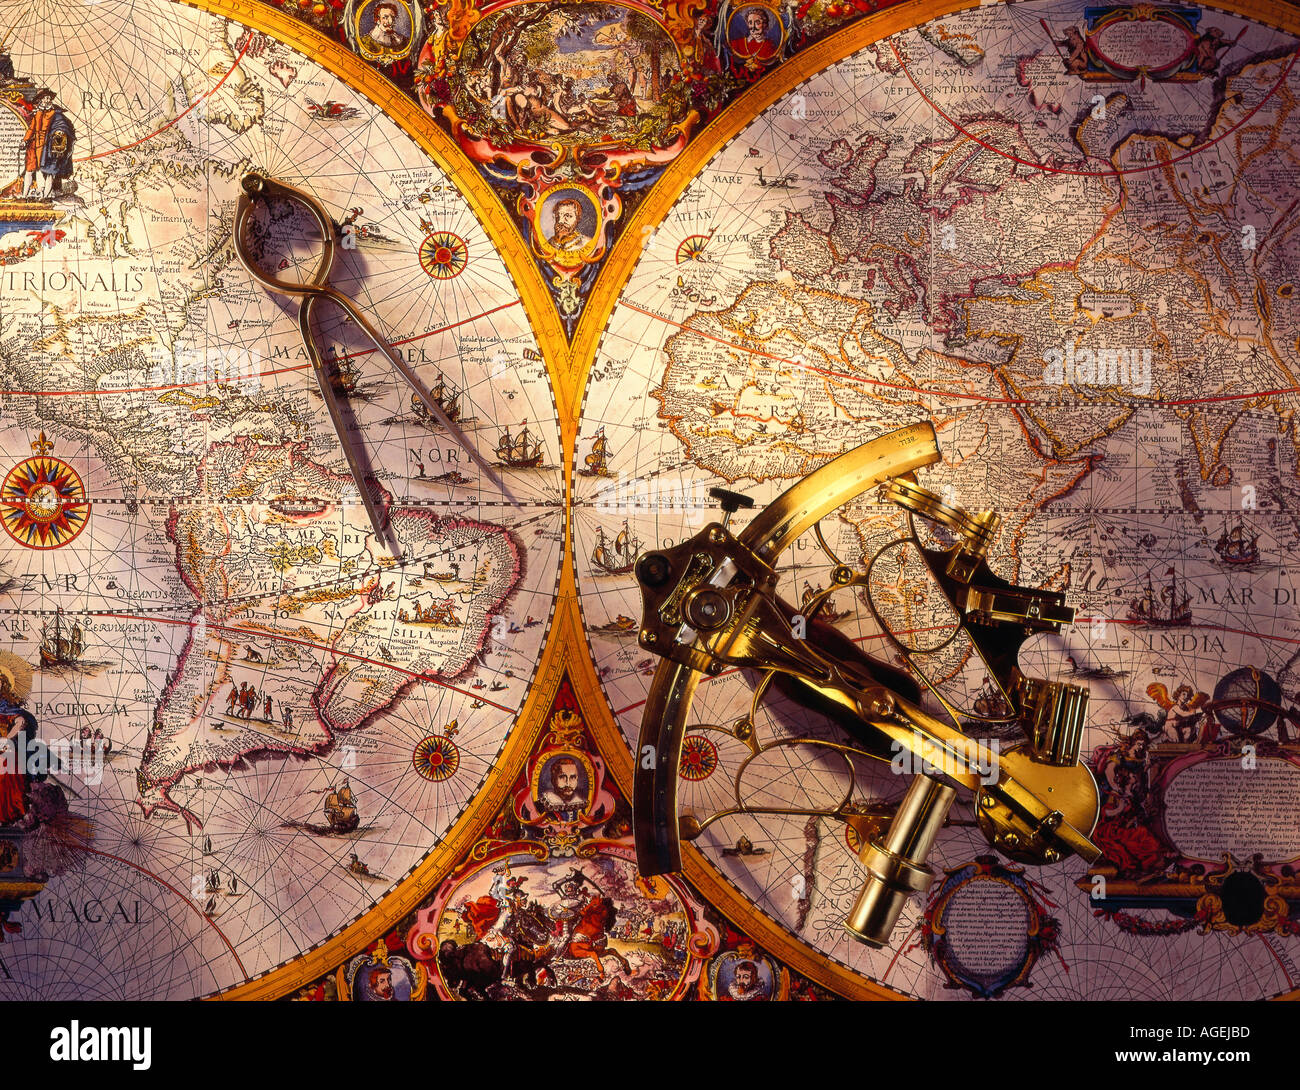 Sextant and dividers on old naval map - Stock Image